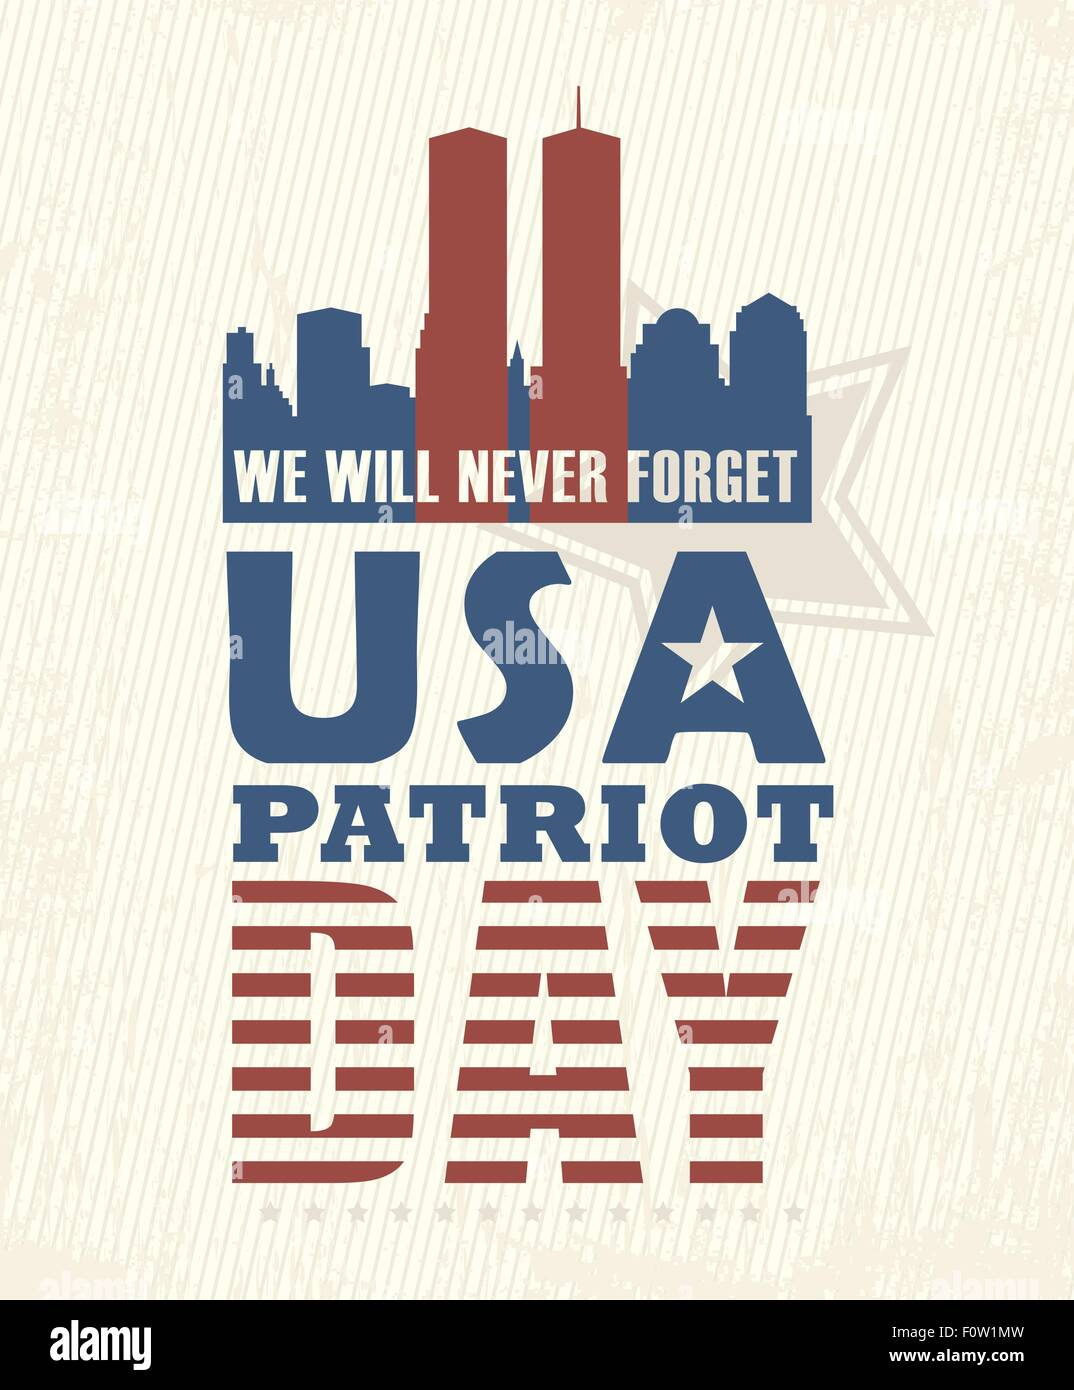 9 11 Patriot Day September 11 Never Forget National Day